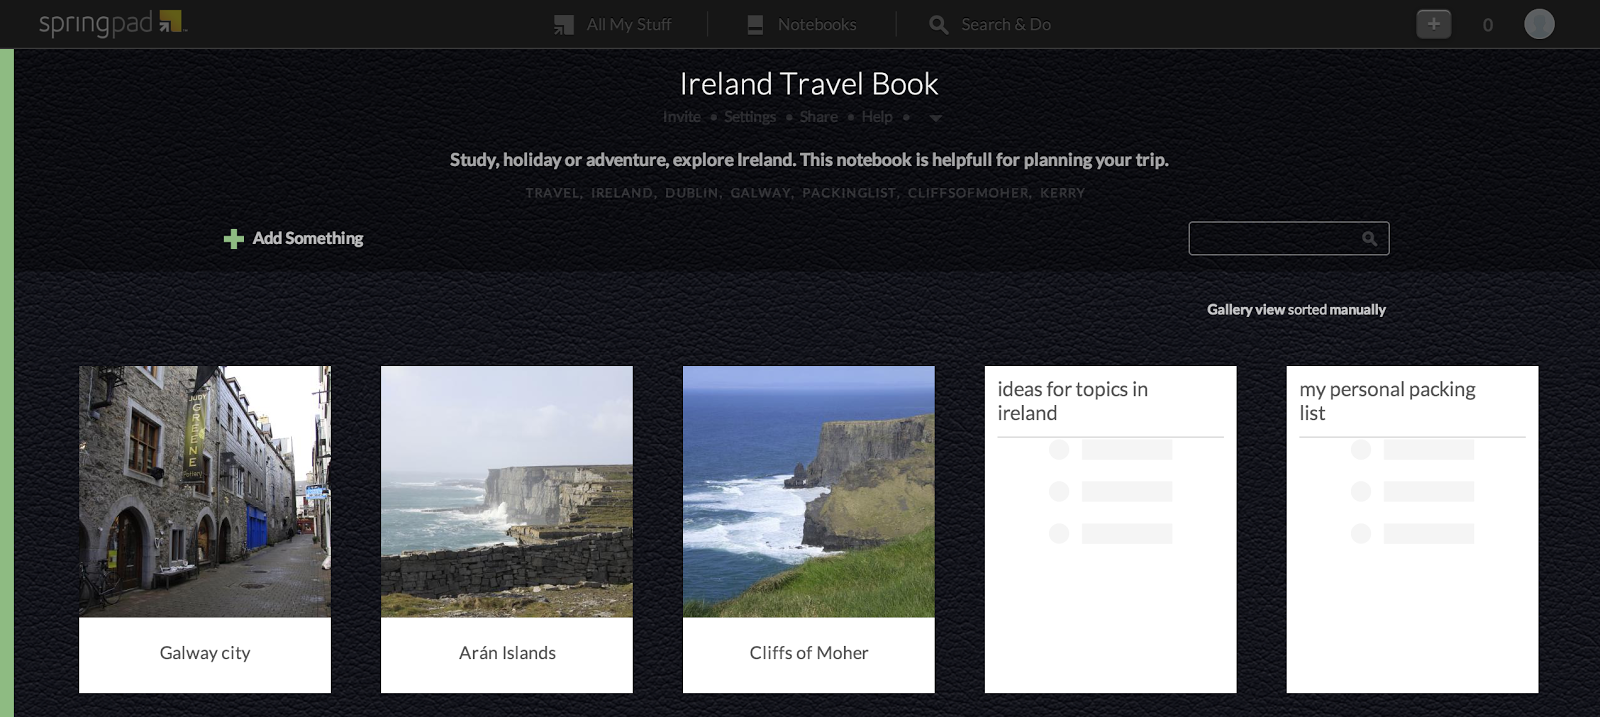 https://springpad.com/#!/rskatze0/notebooks/irelandtravelbook/blocks